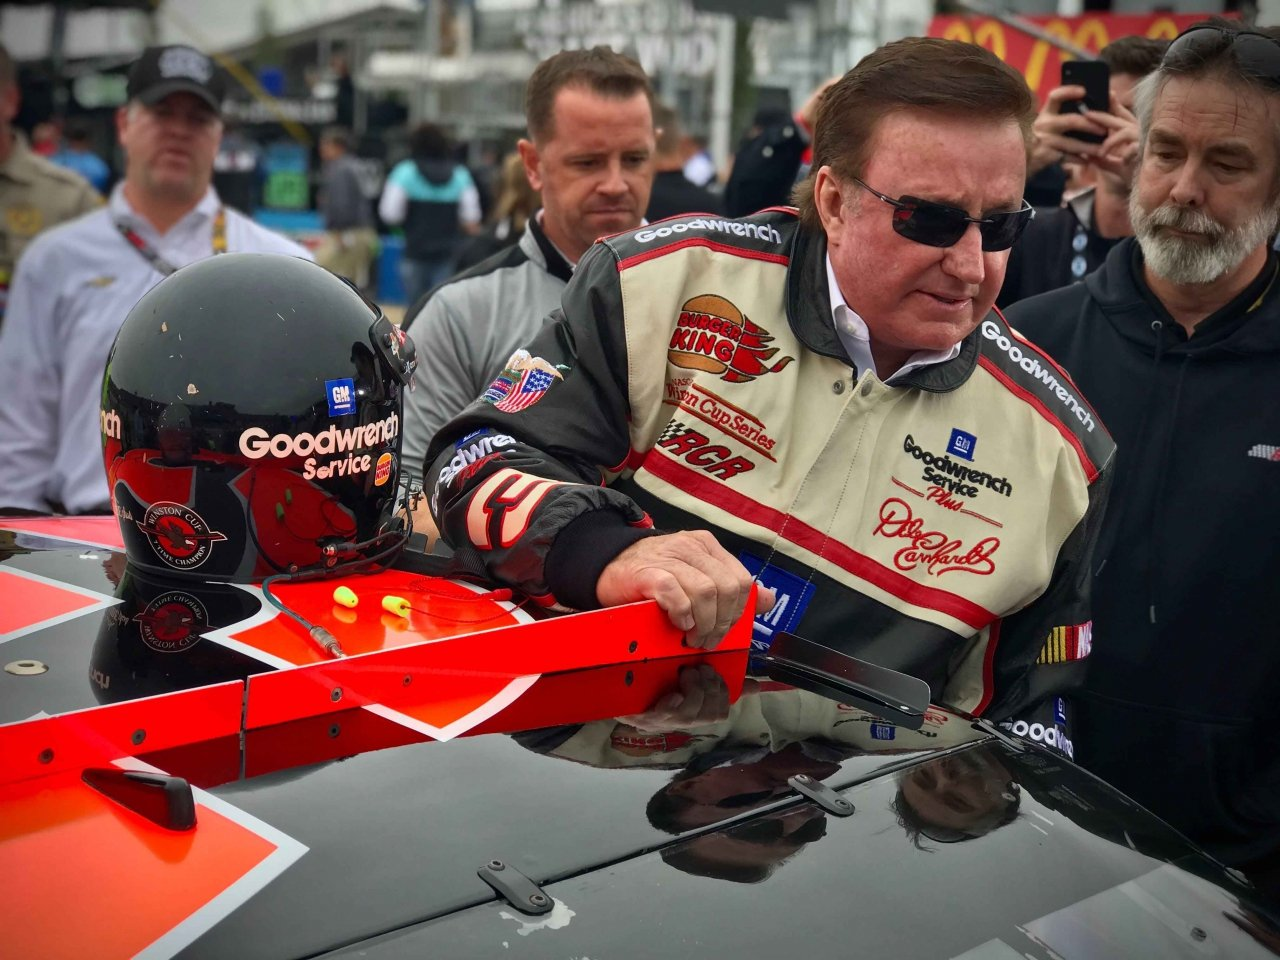 Richard Childress drives Dale Earnhardt 3 car at Talladega Superspeedway - NASCAR